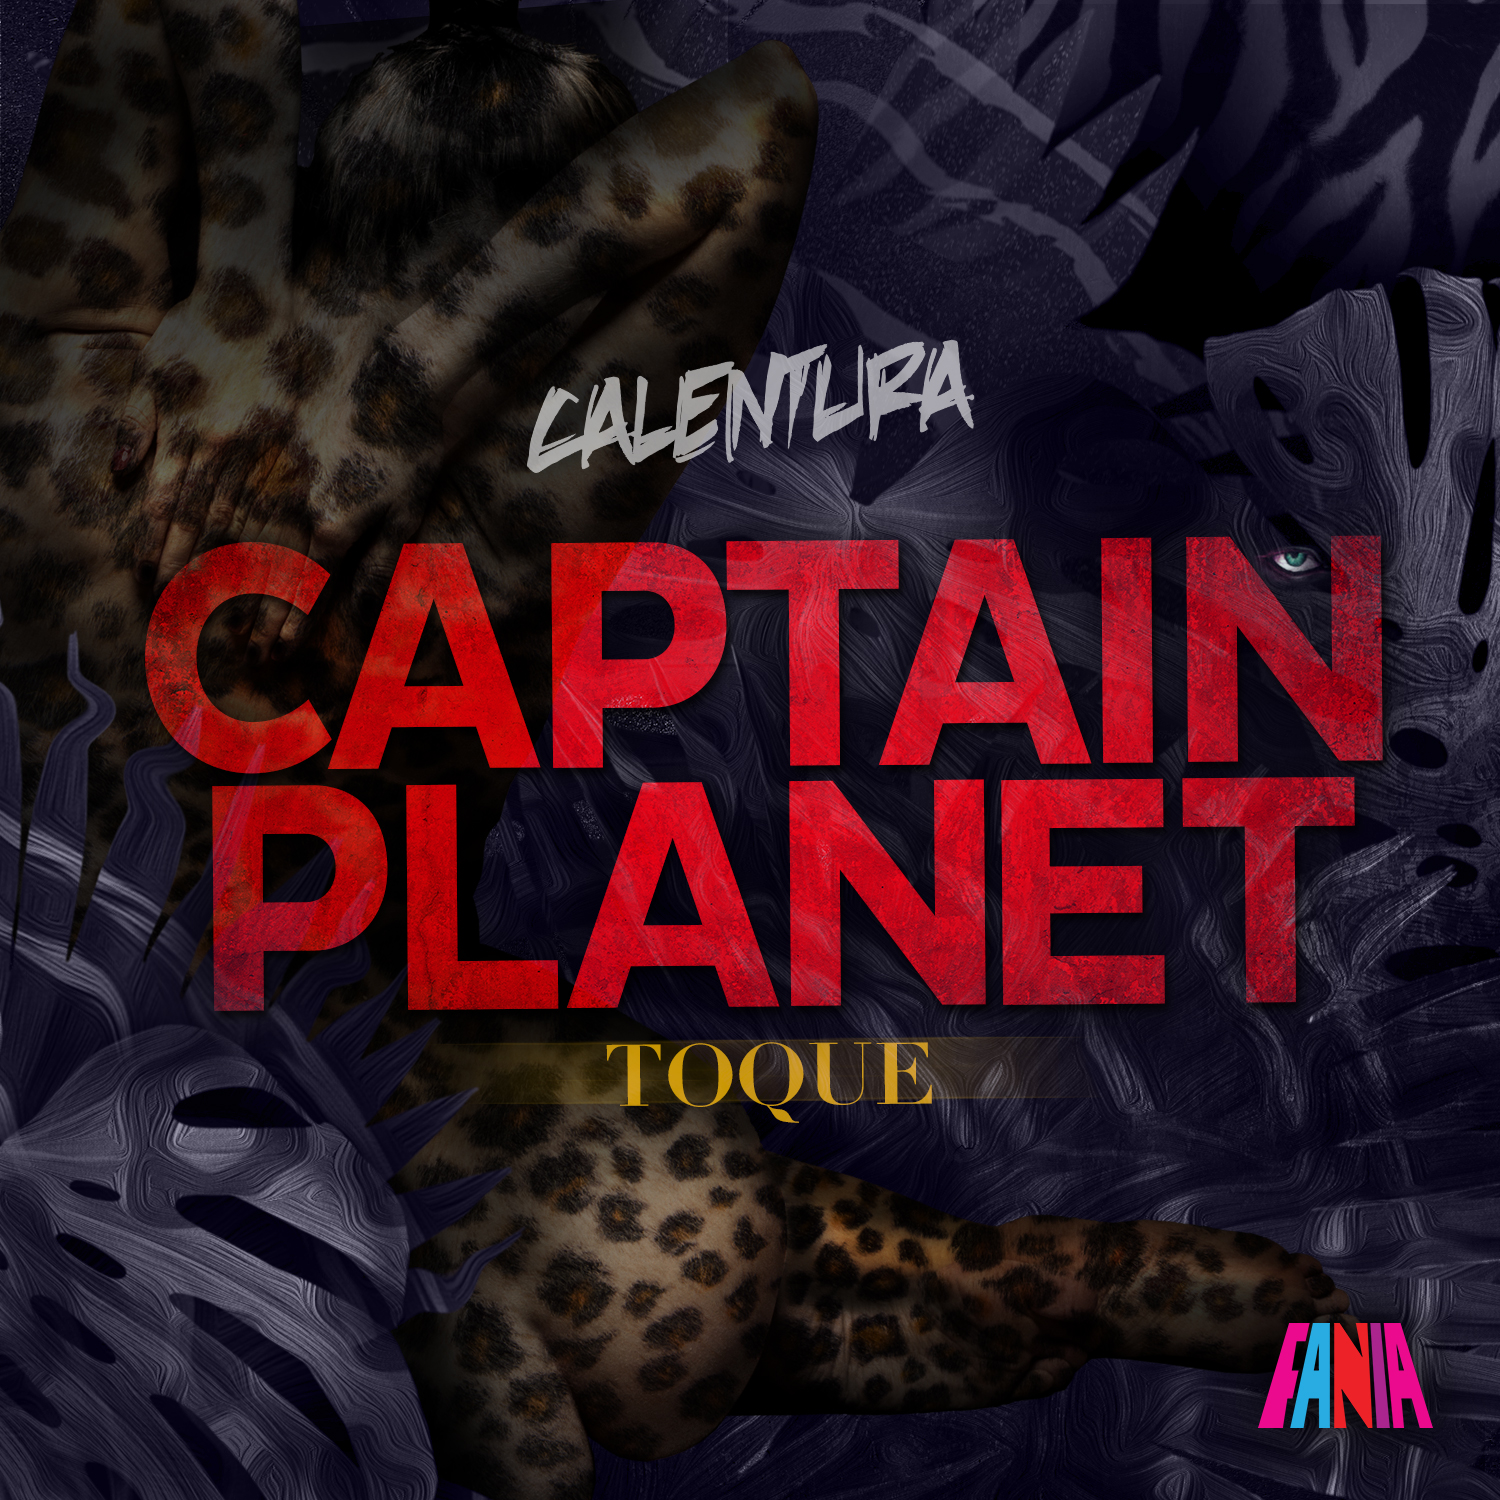 CAPTAIN-PLANET_TOQUE